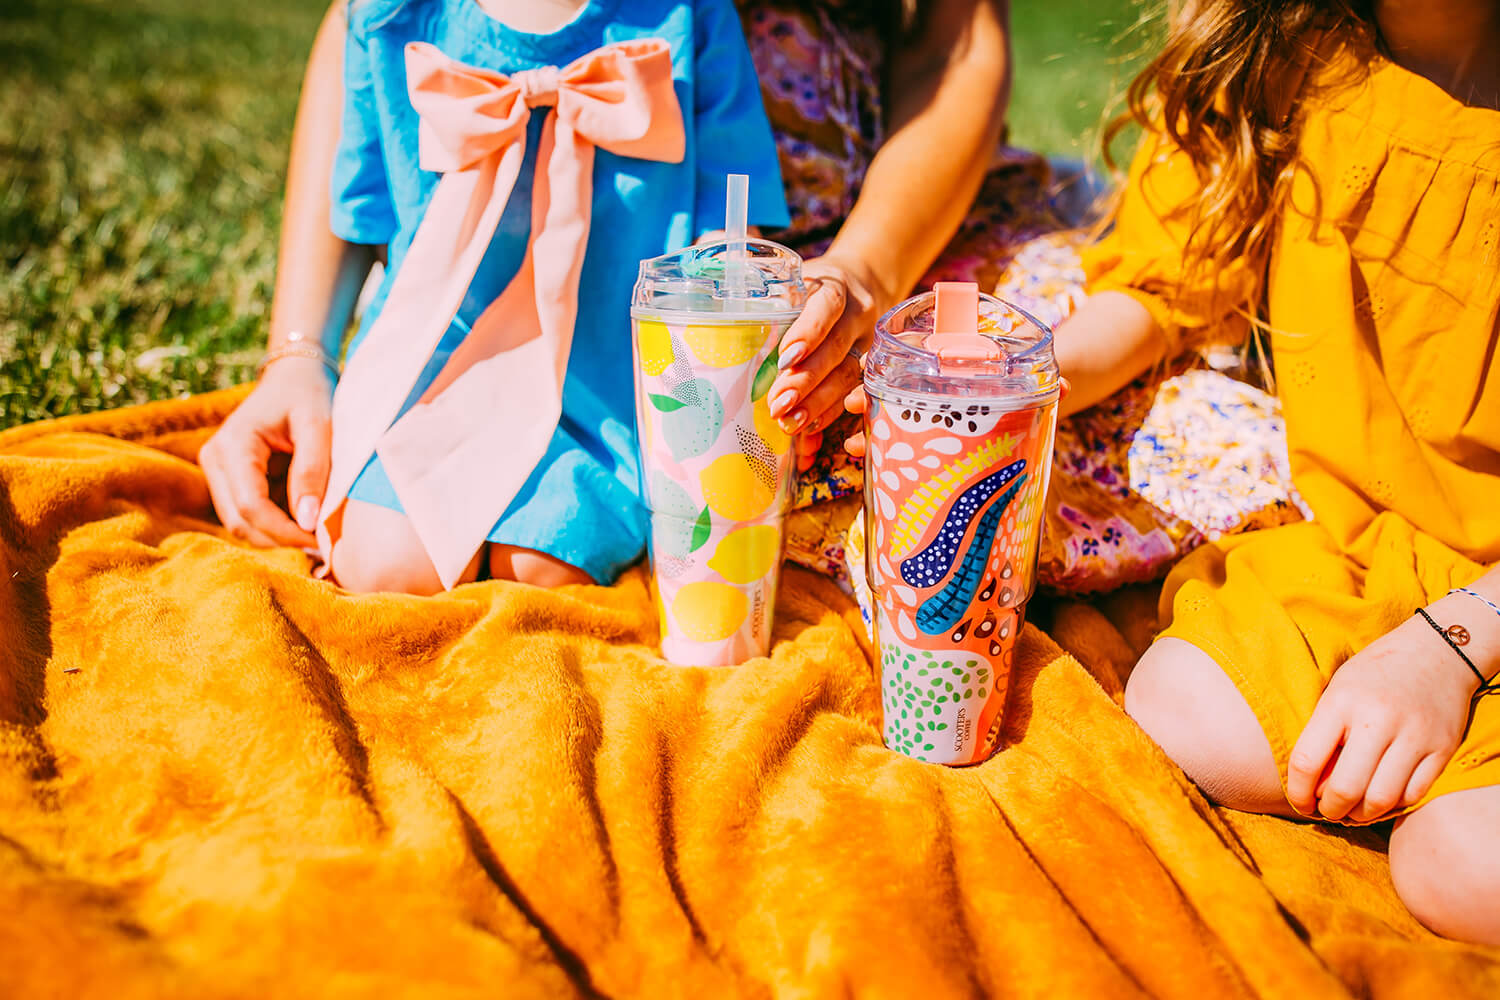 Two colorful cups on picnic blanket